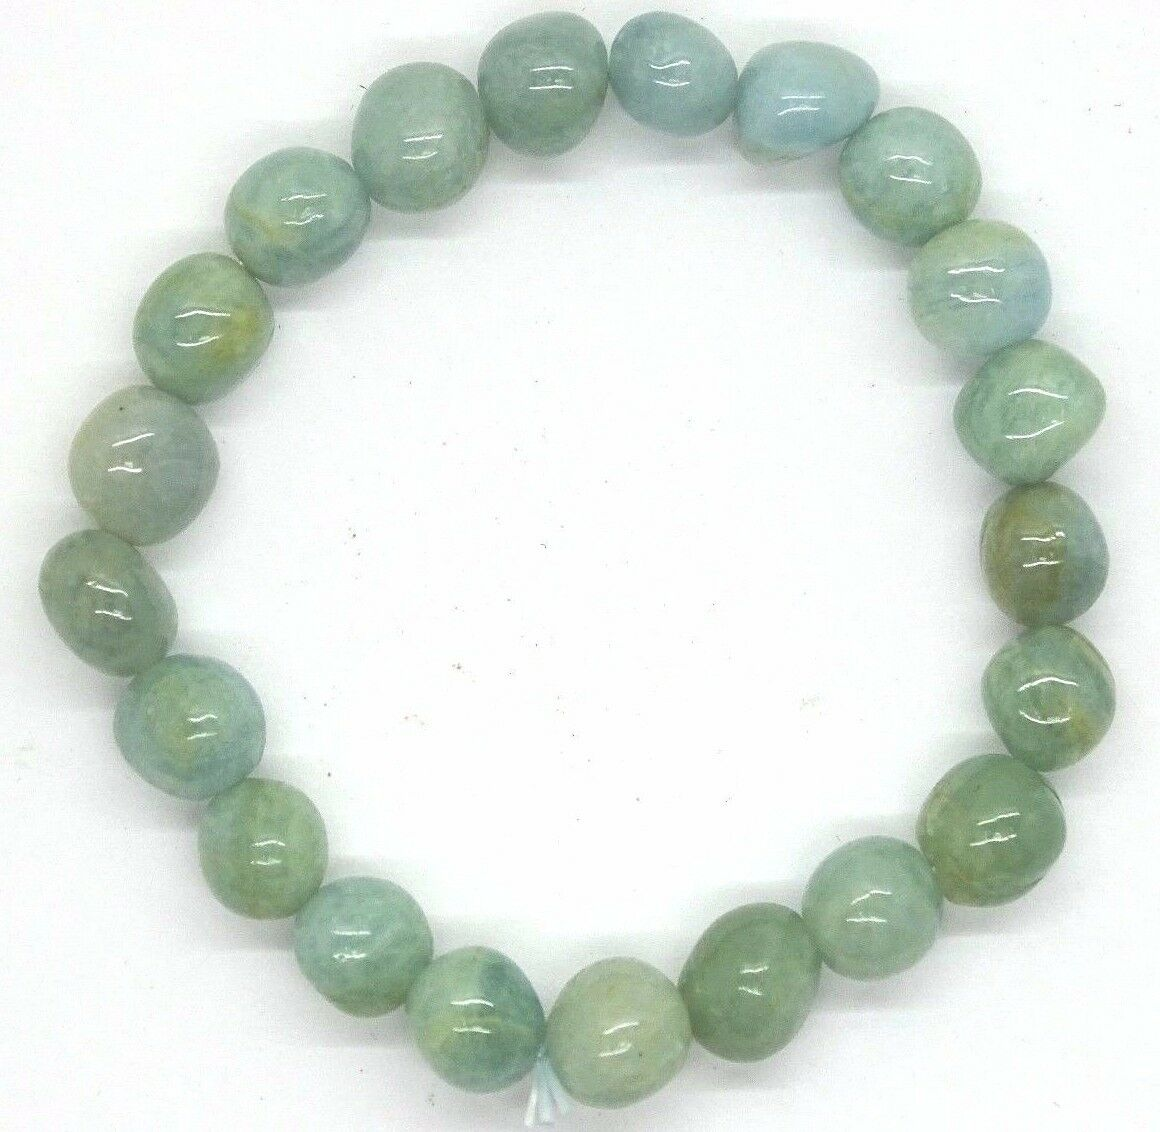 "UNIQUE 7""  8-10MM. FREE-FORM AQUAMRINE STRETCH  BRACELET - BEST PRICE"